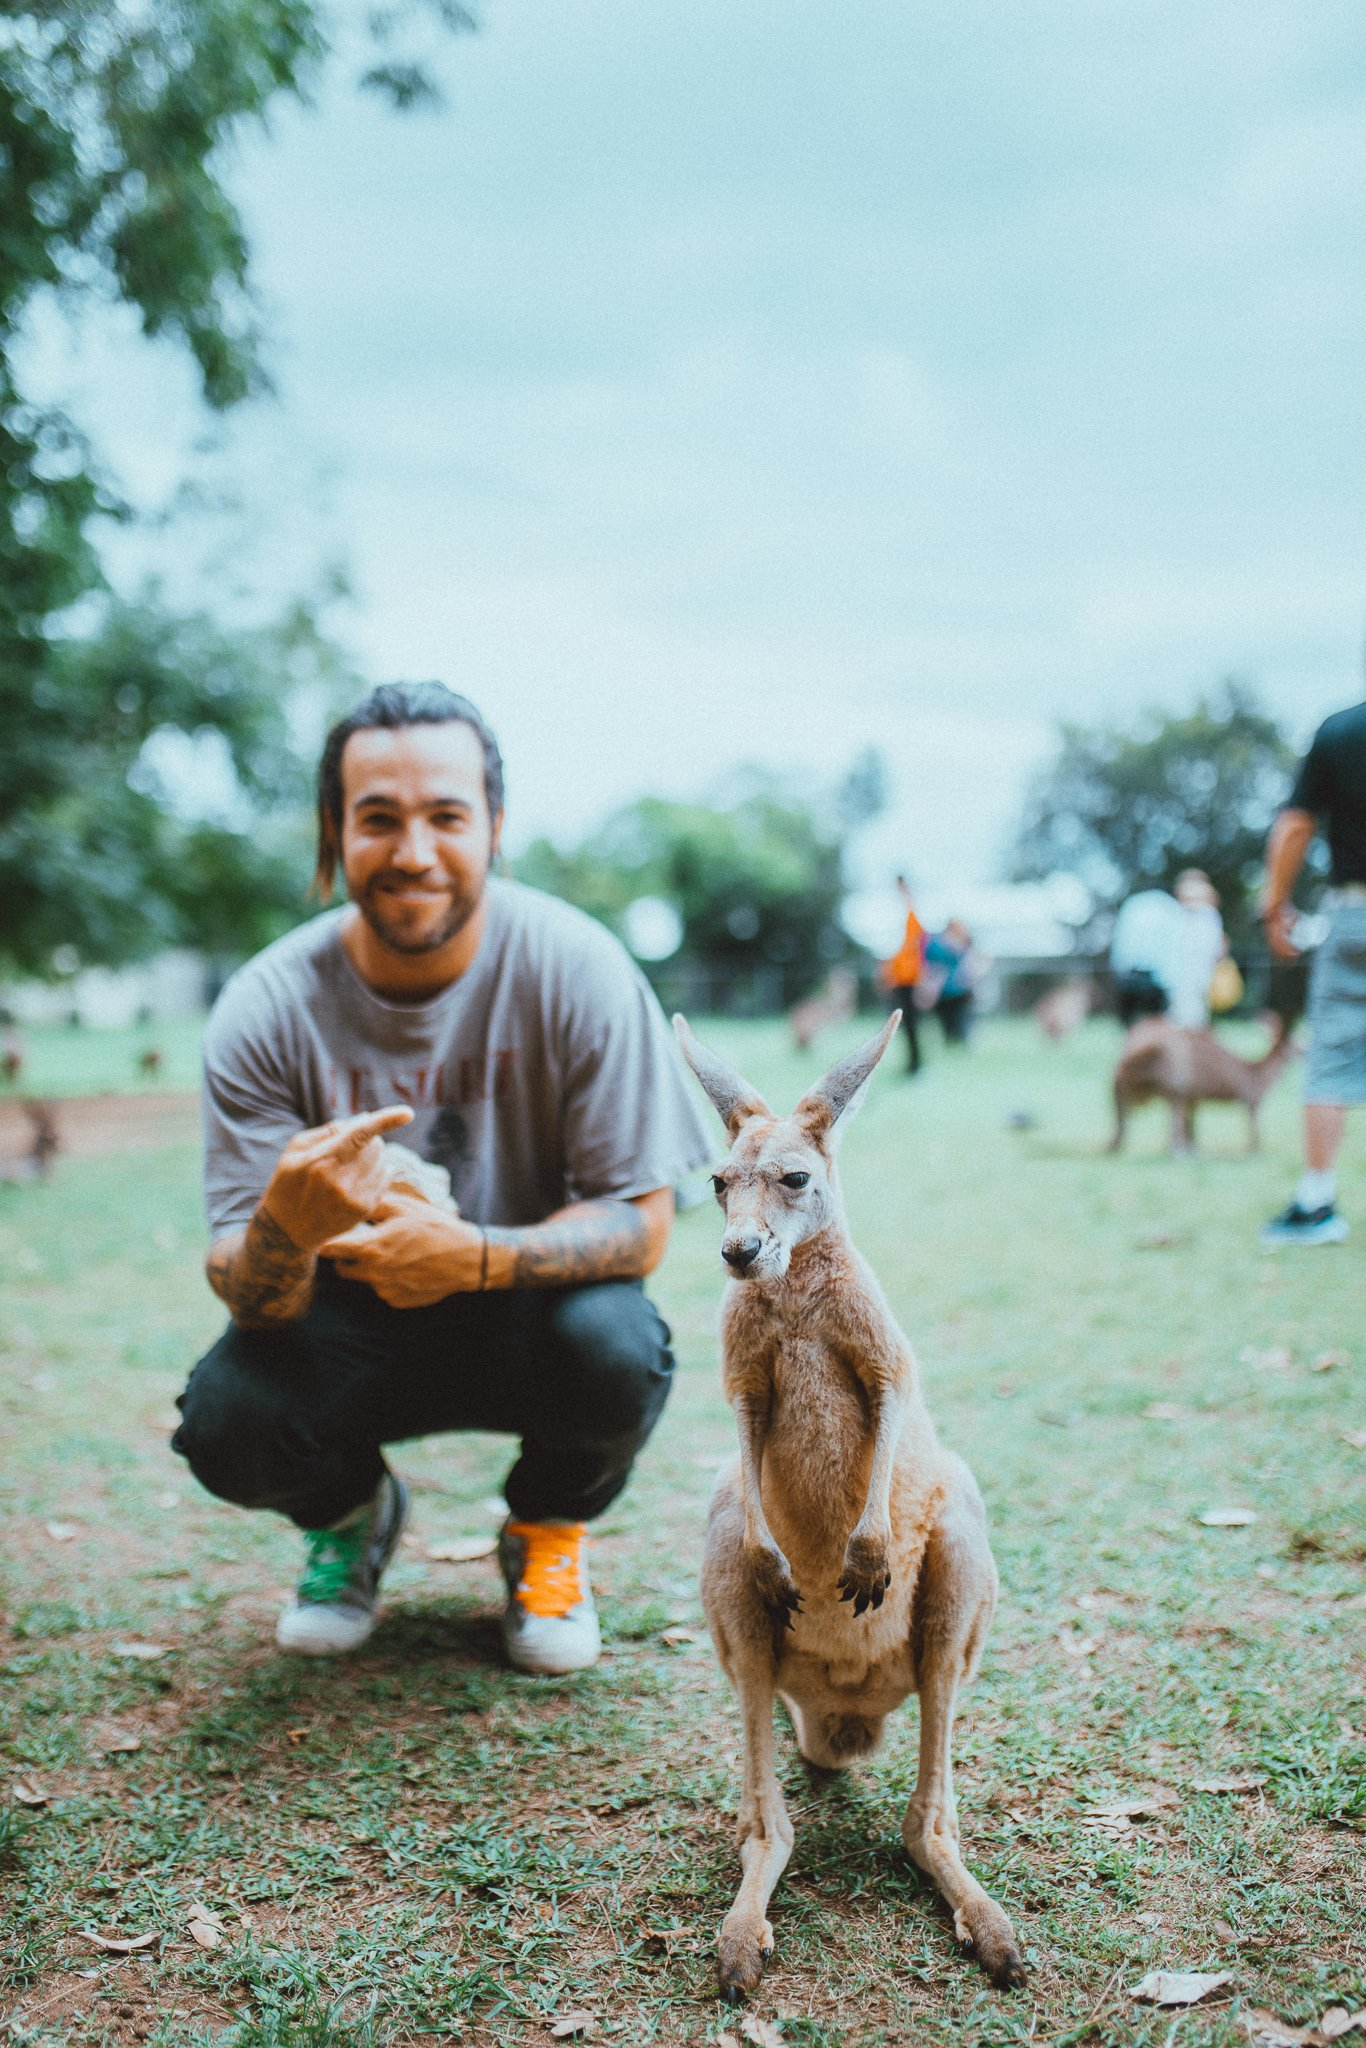 say hi to our tour guide �� Brisbane, are you ready for the M A  N   I    A Tour? ��  �� @elliottingham https://t.co/jHst65nwRk